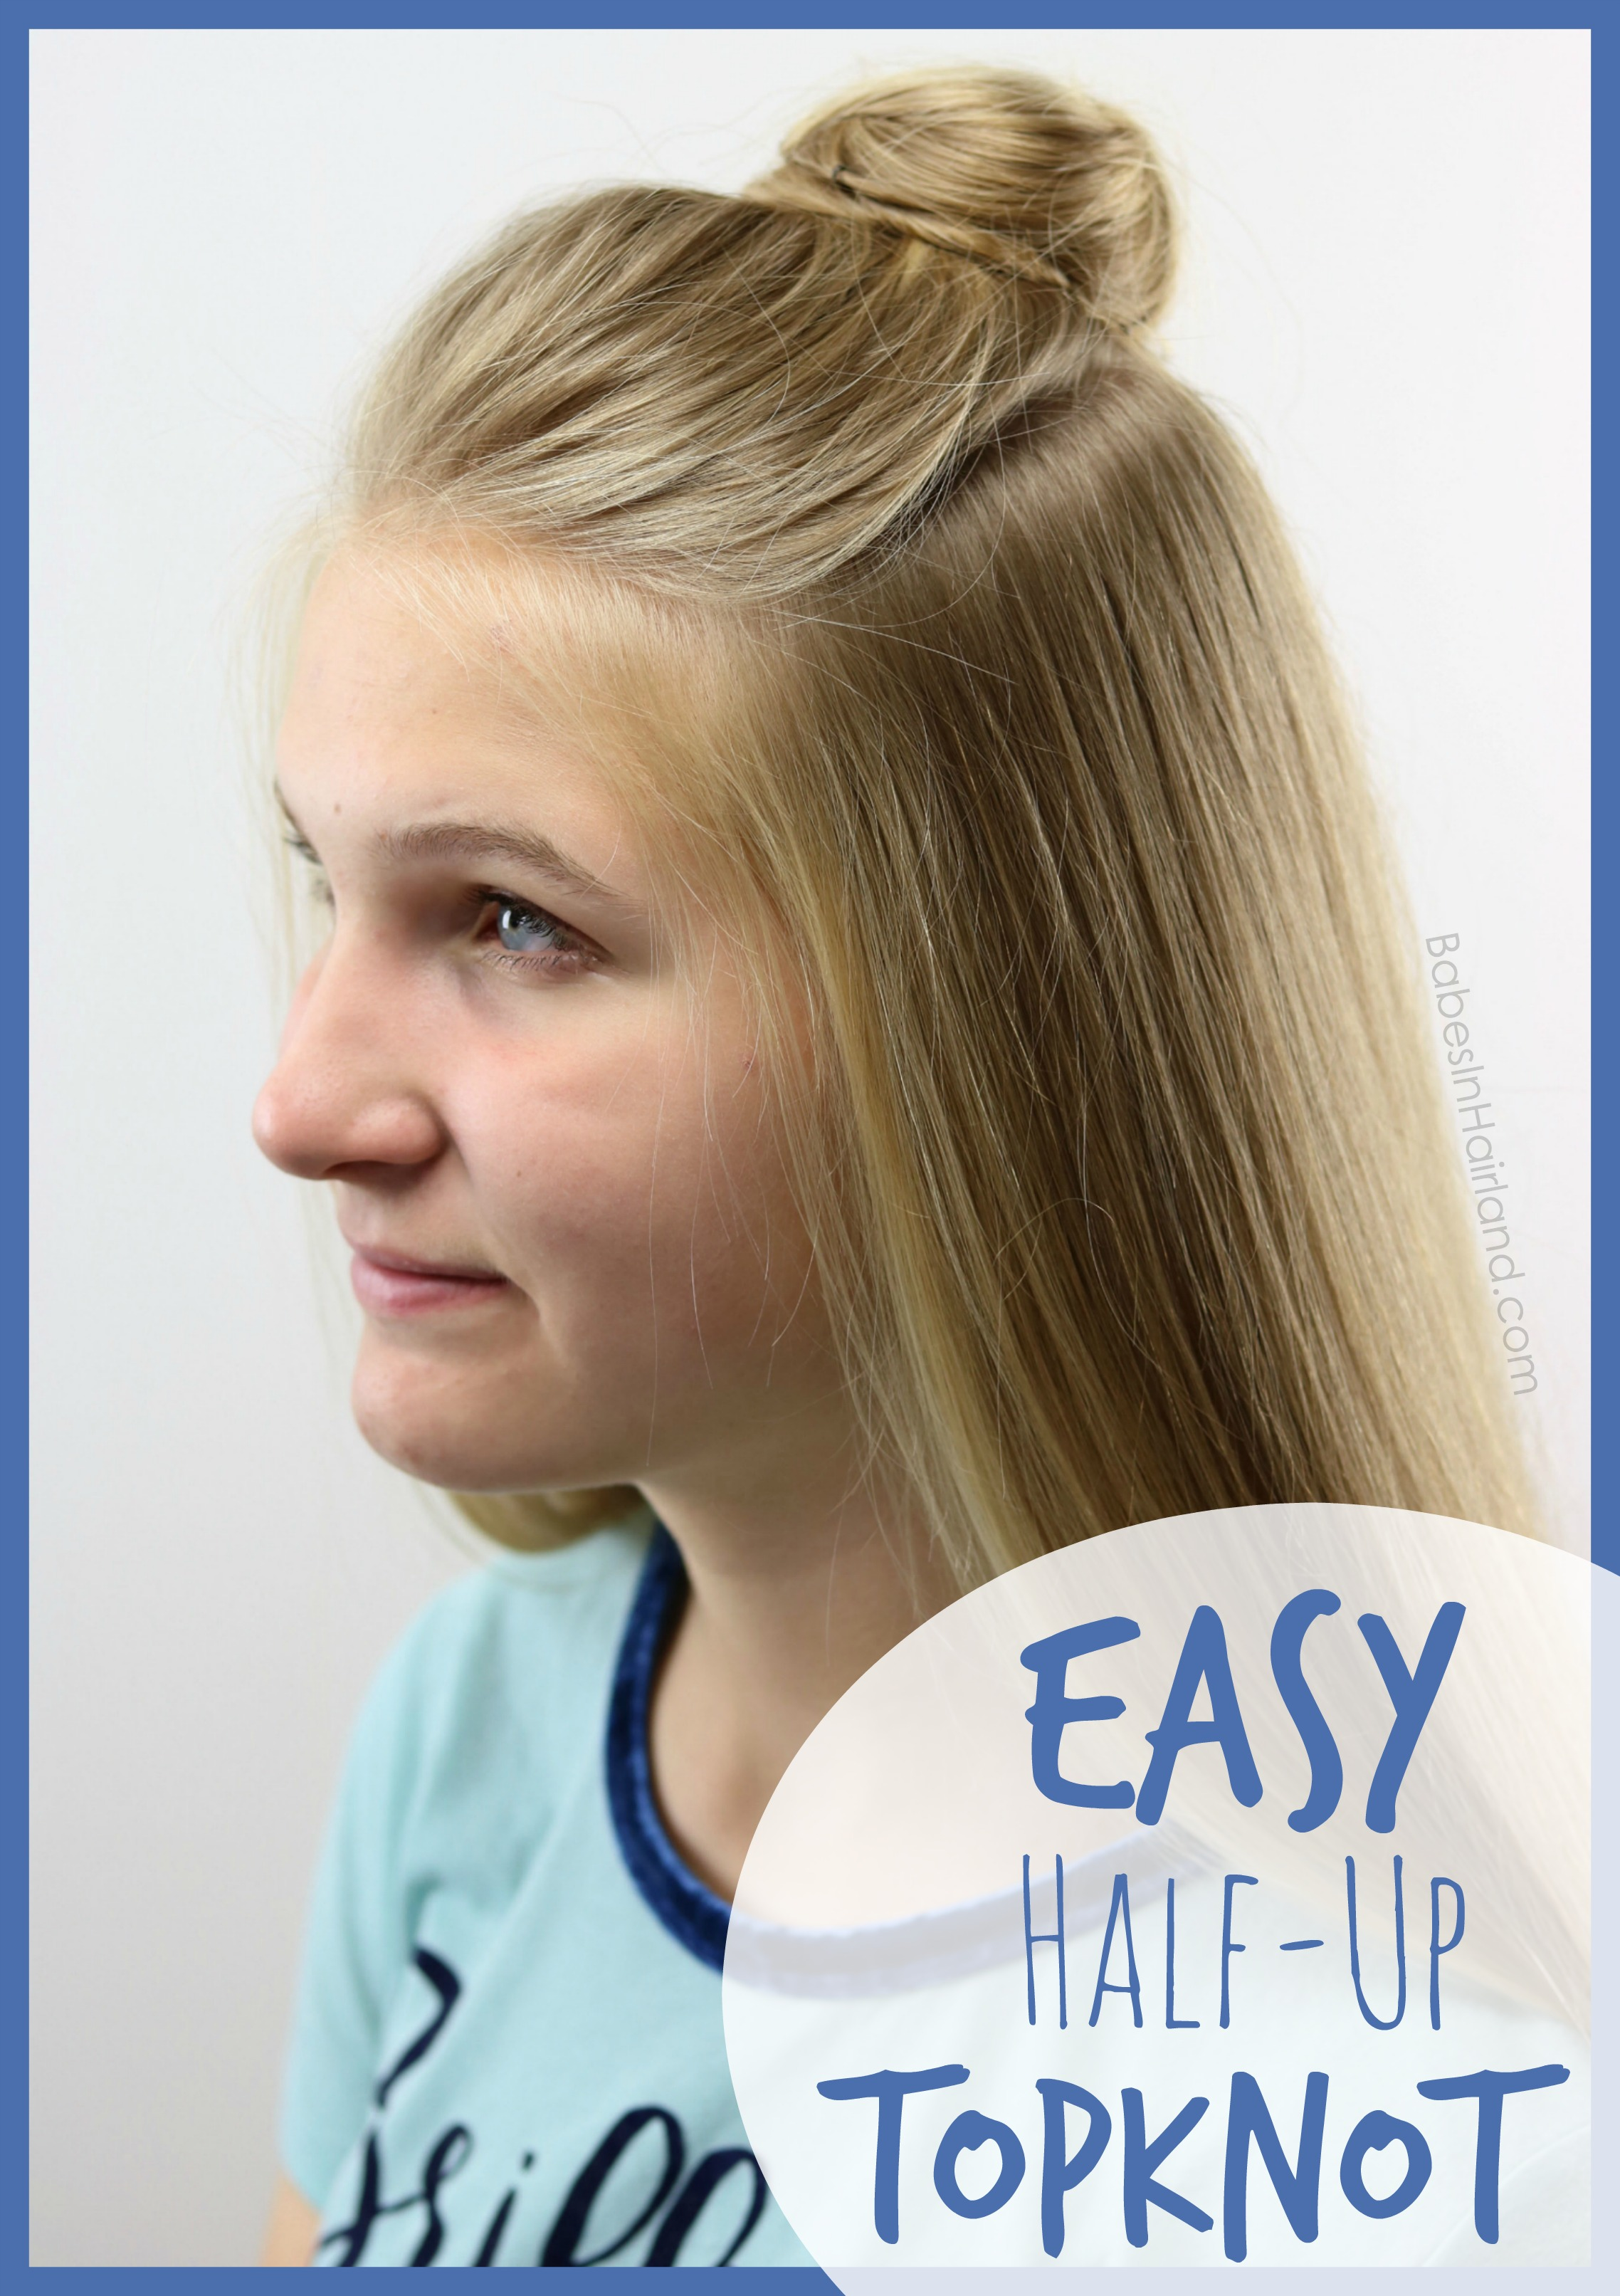 Be out the door in minutes with this quick & easy half-up topknot hairstyle  tutorial from BabesInHairland.com | teen hairstyle | bun | hair